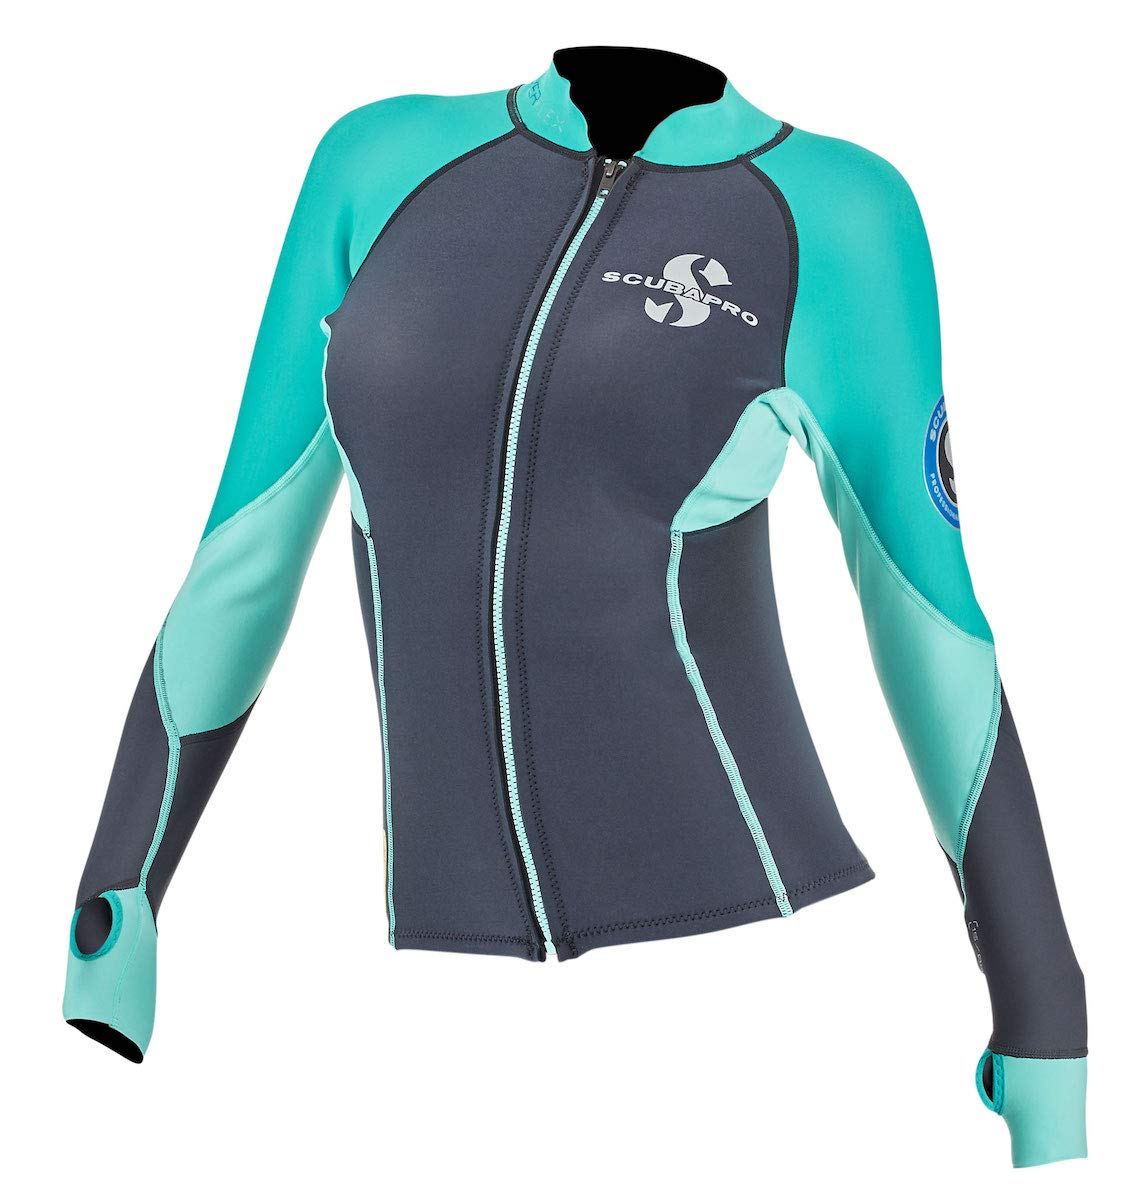 Scubapro Women's 1.5mm Everflex Long Sleeve Rash Guard (Teal, X-Small)